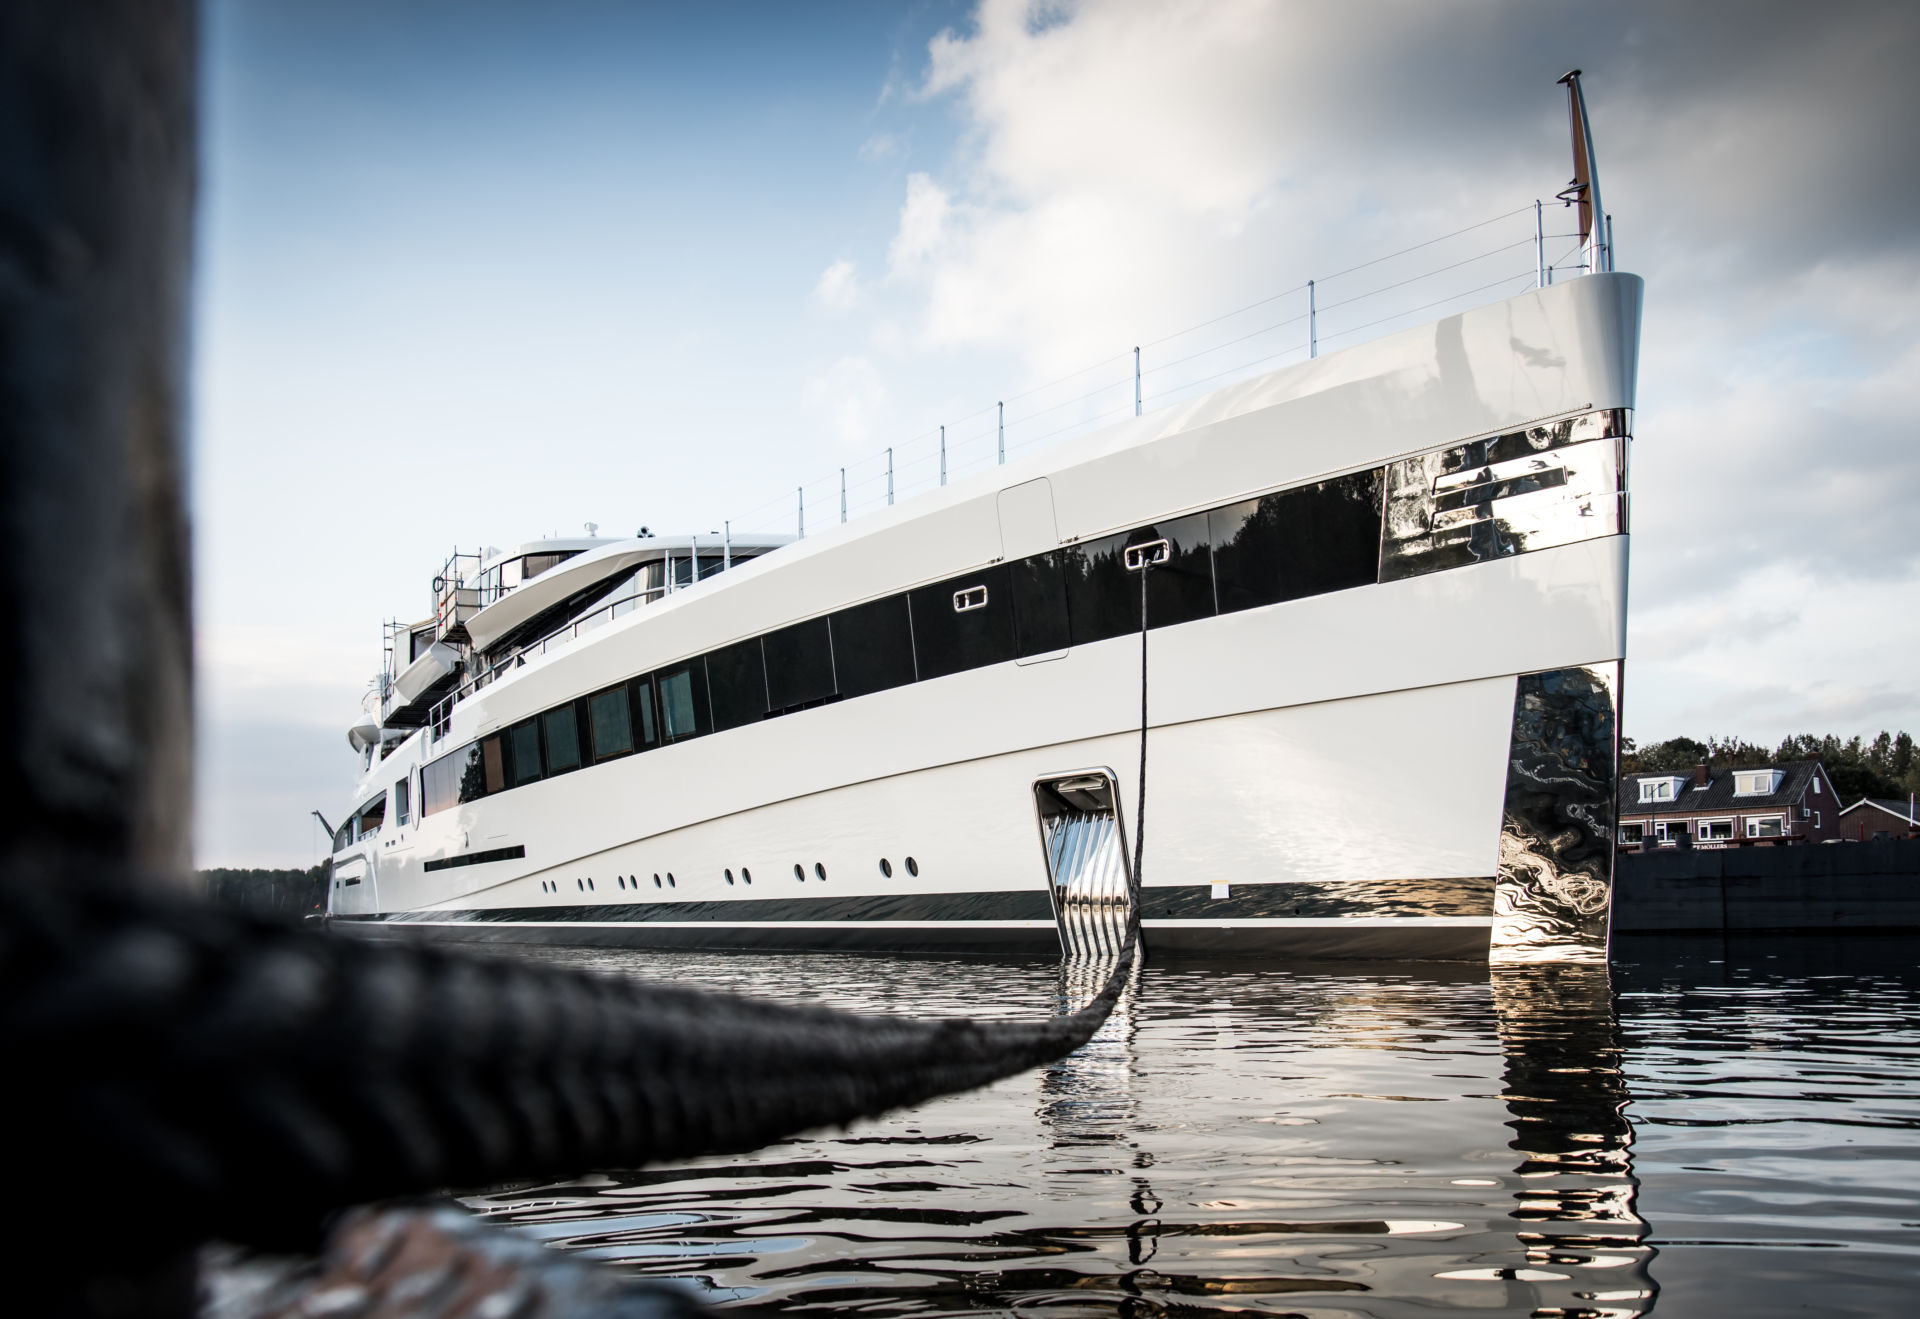 Dan Snyder Buys $100 Million Yacht As D C  Officials Work To